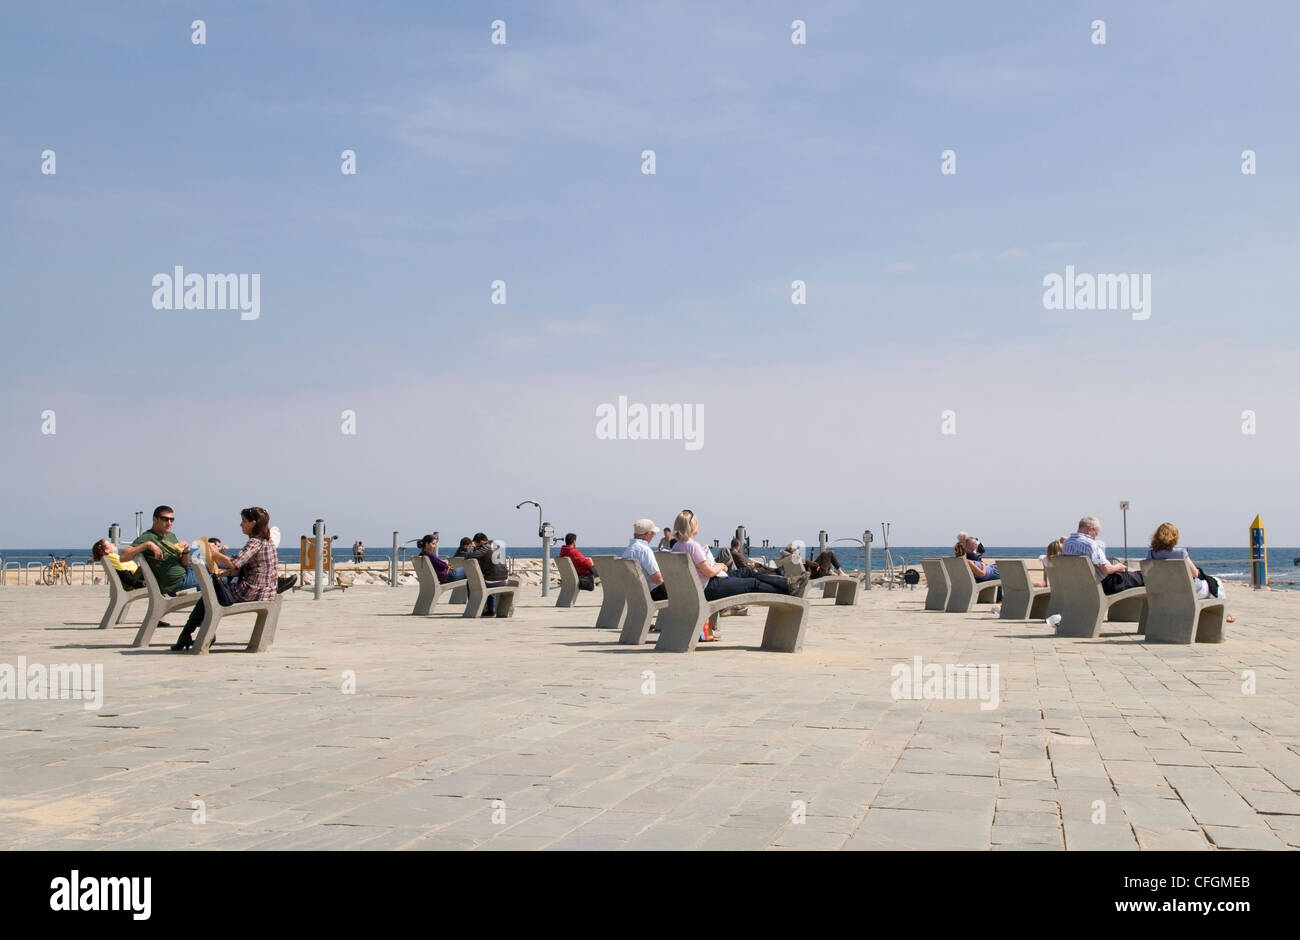 People sitting relaxing on modern concrete chairs in front of the sea in Barcelona, with public exercise machines - Stock Image